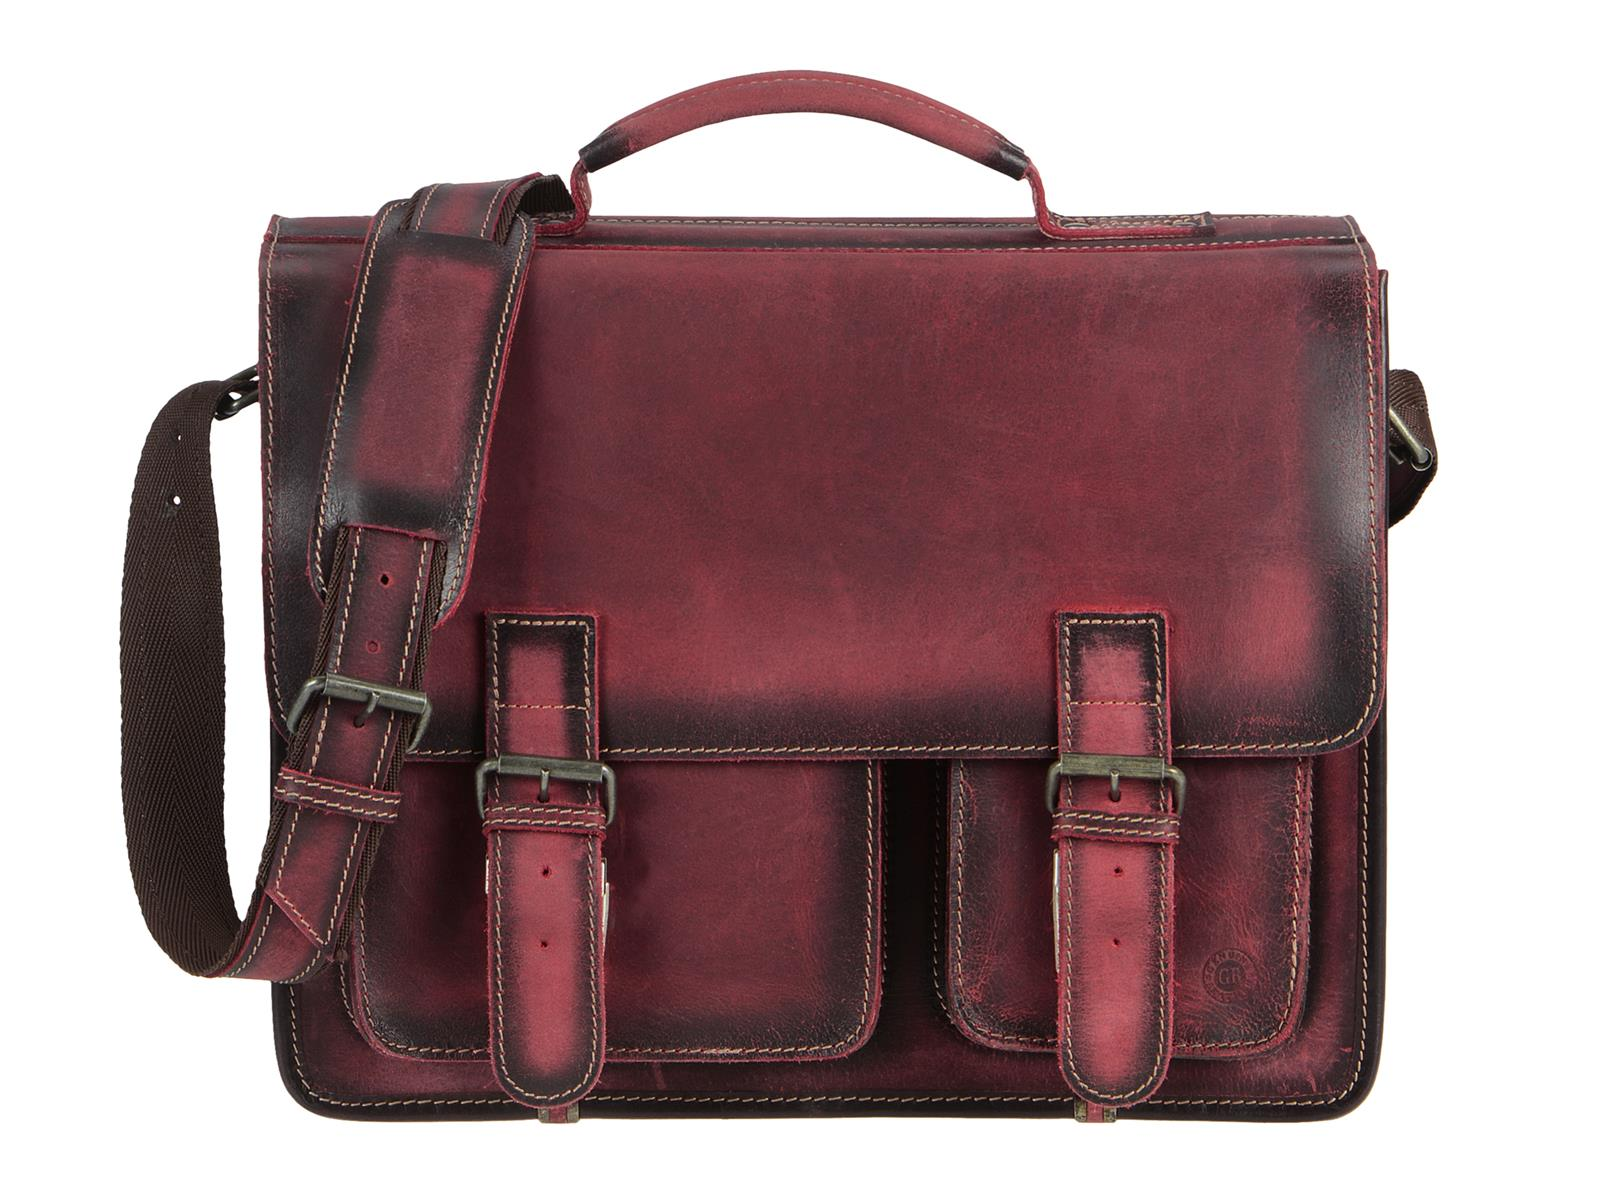 dc531a5fe9a62 Greenburry Lehrertasche Leder Aktentasche in rot (teak red) 1028B-26